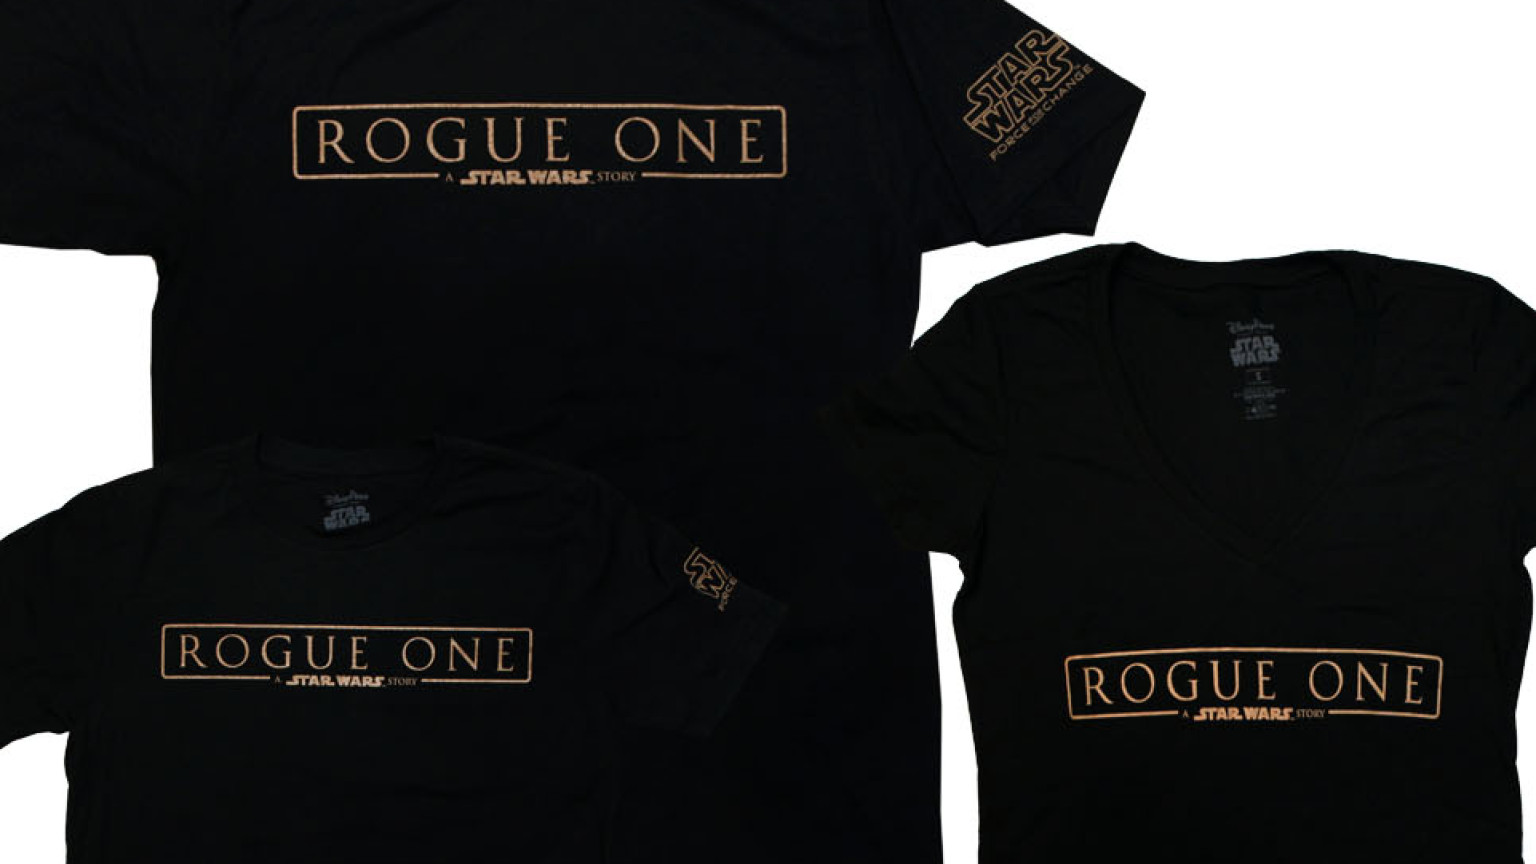 201604_Rogue One (1)